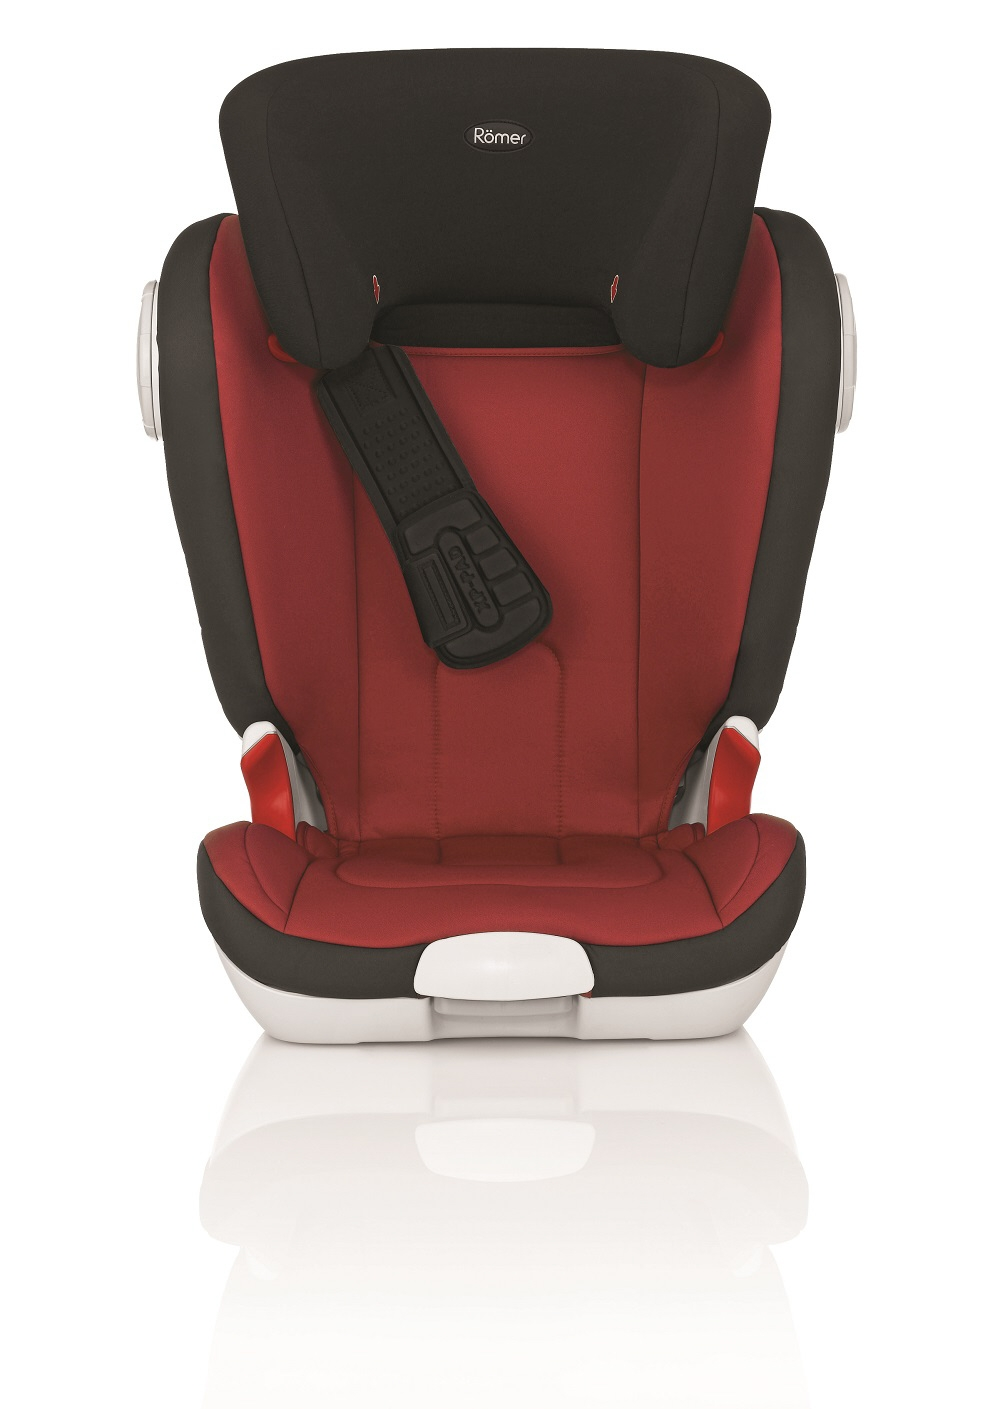 britax r mer car seat kidfix xp sict 2015 chili pepper. Black Bedroom Furniture Sets. Home Design Ideas